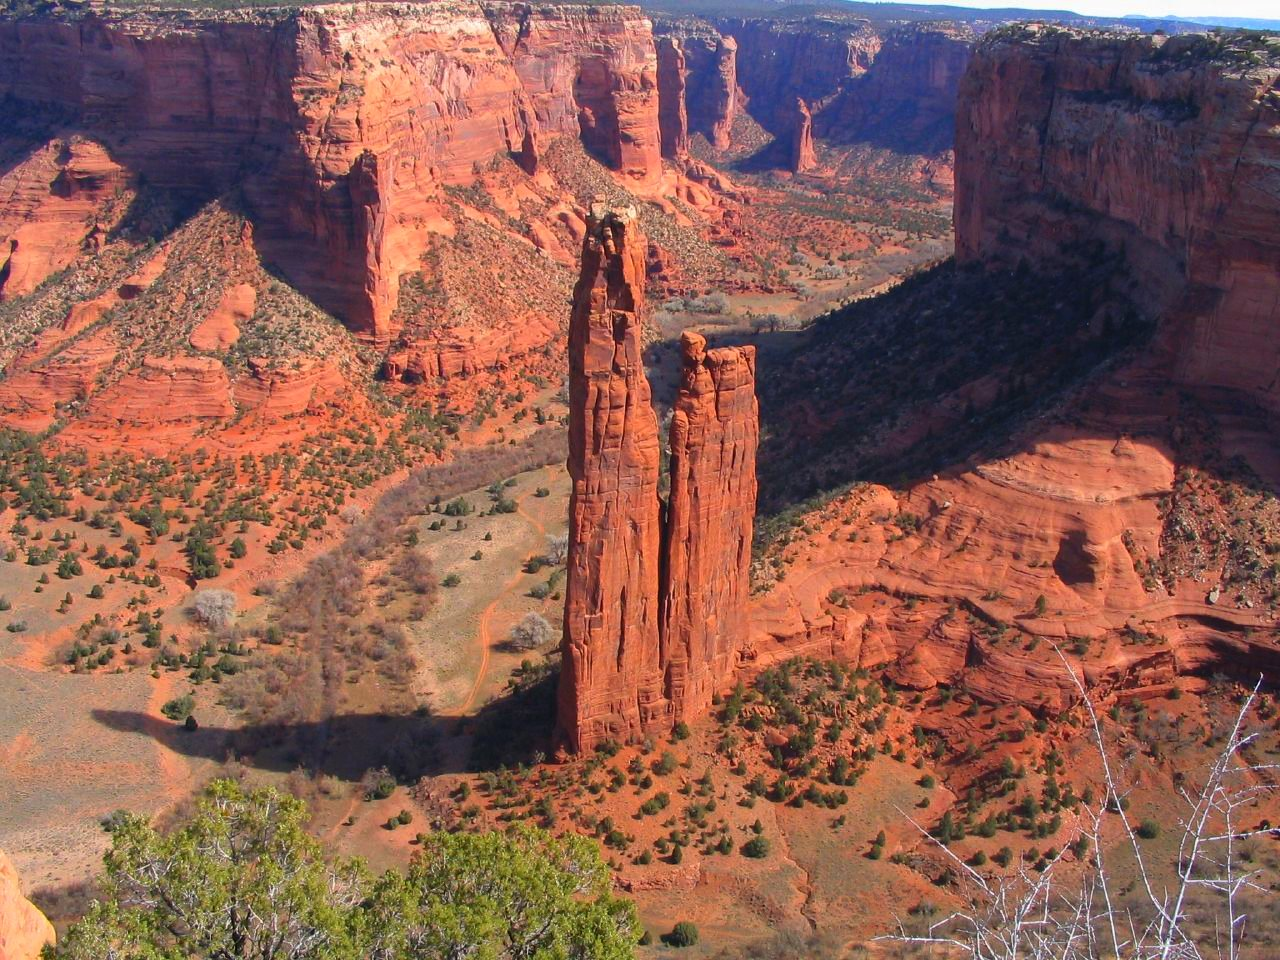 Spider Rock, Canyon de Chelly National Monument, Navajo Nation, Arizona